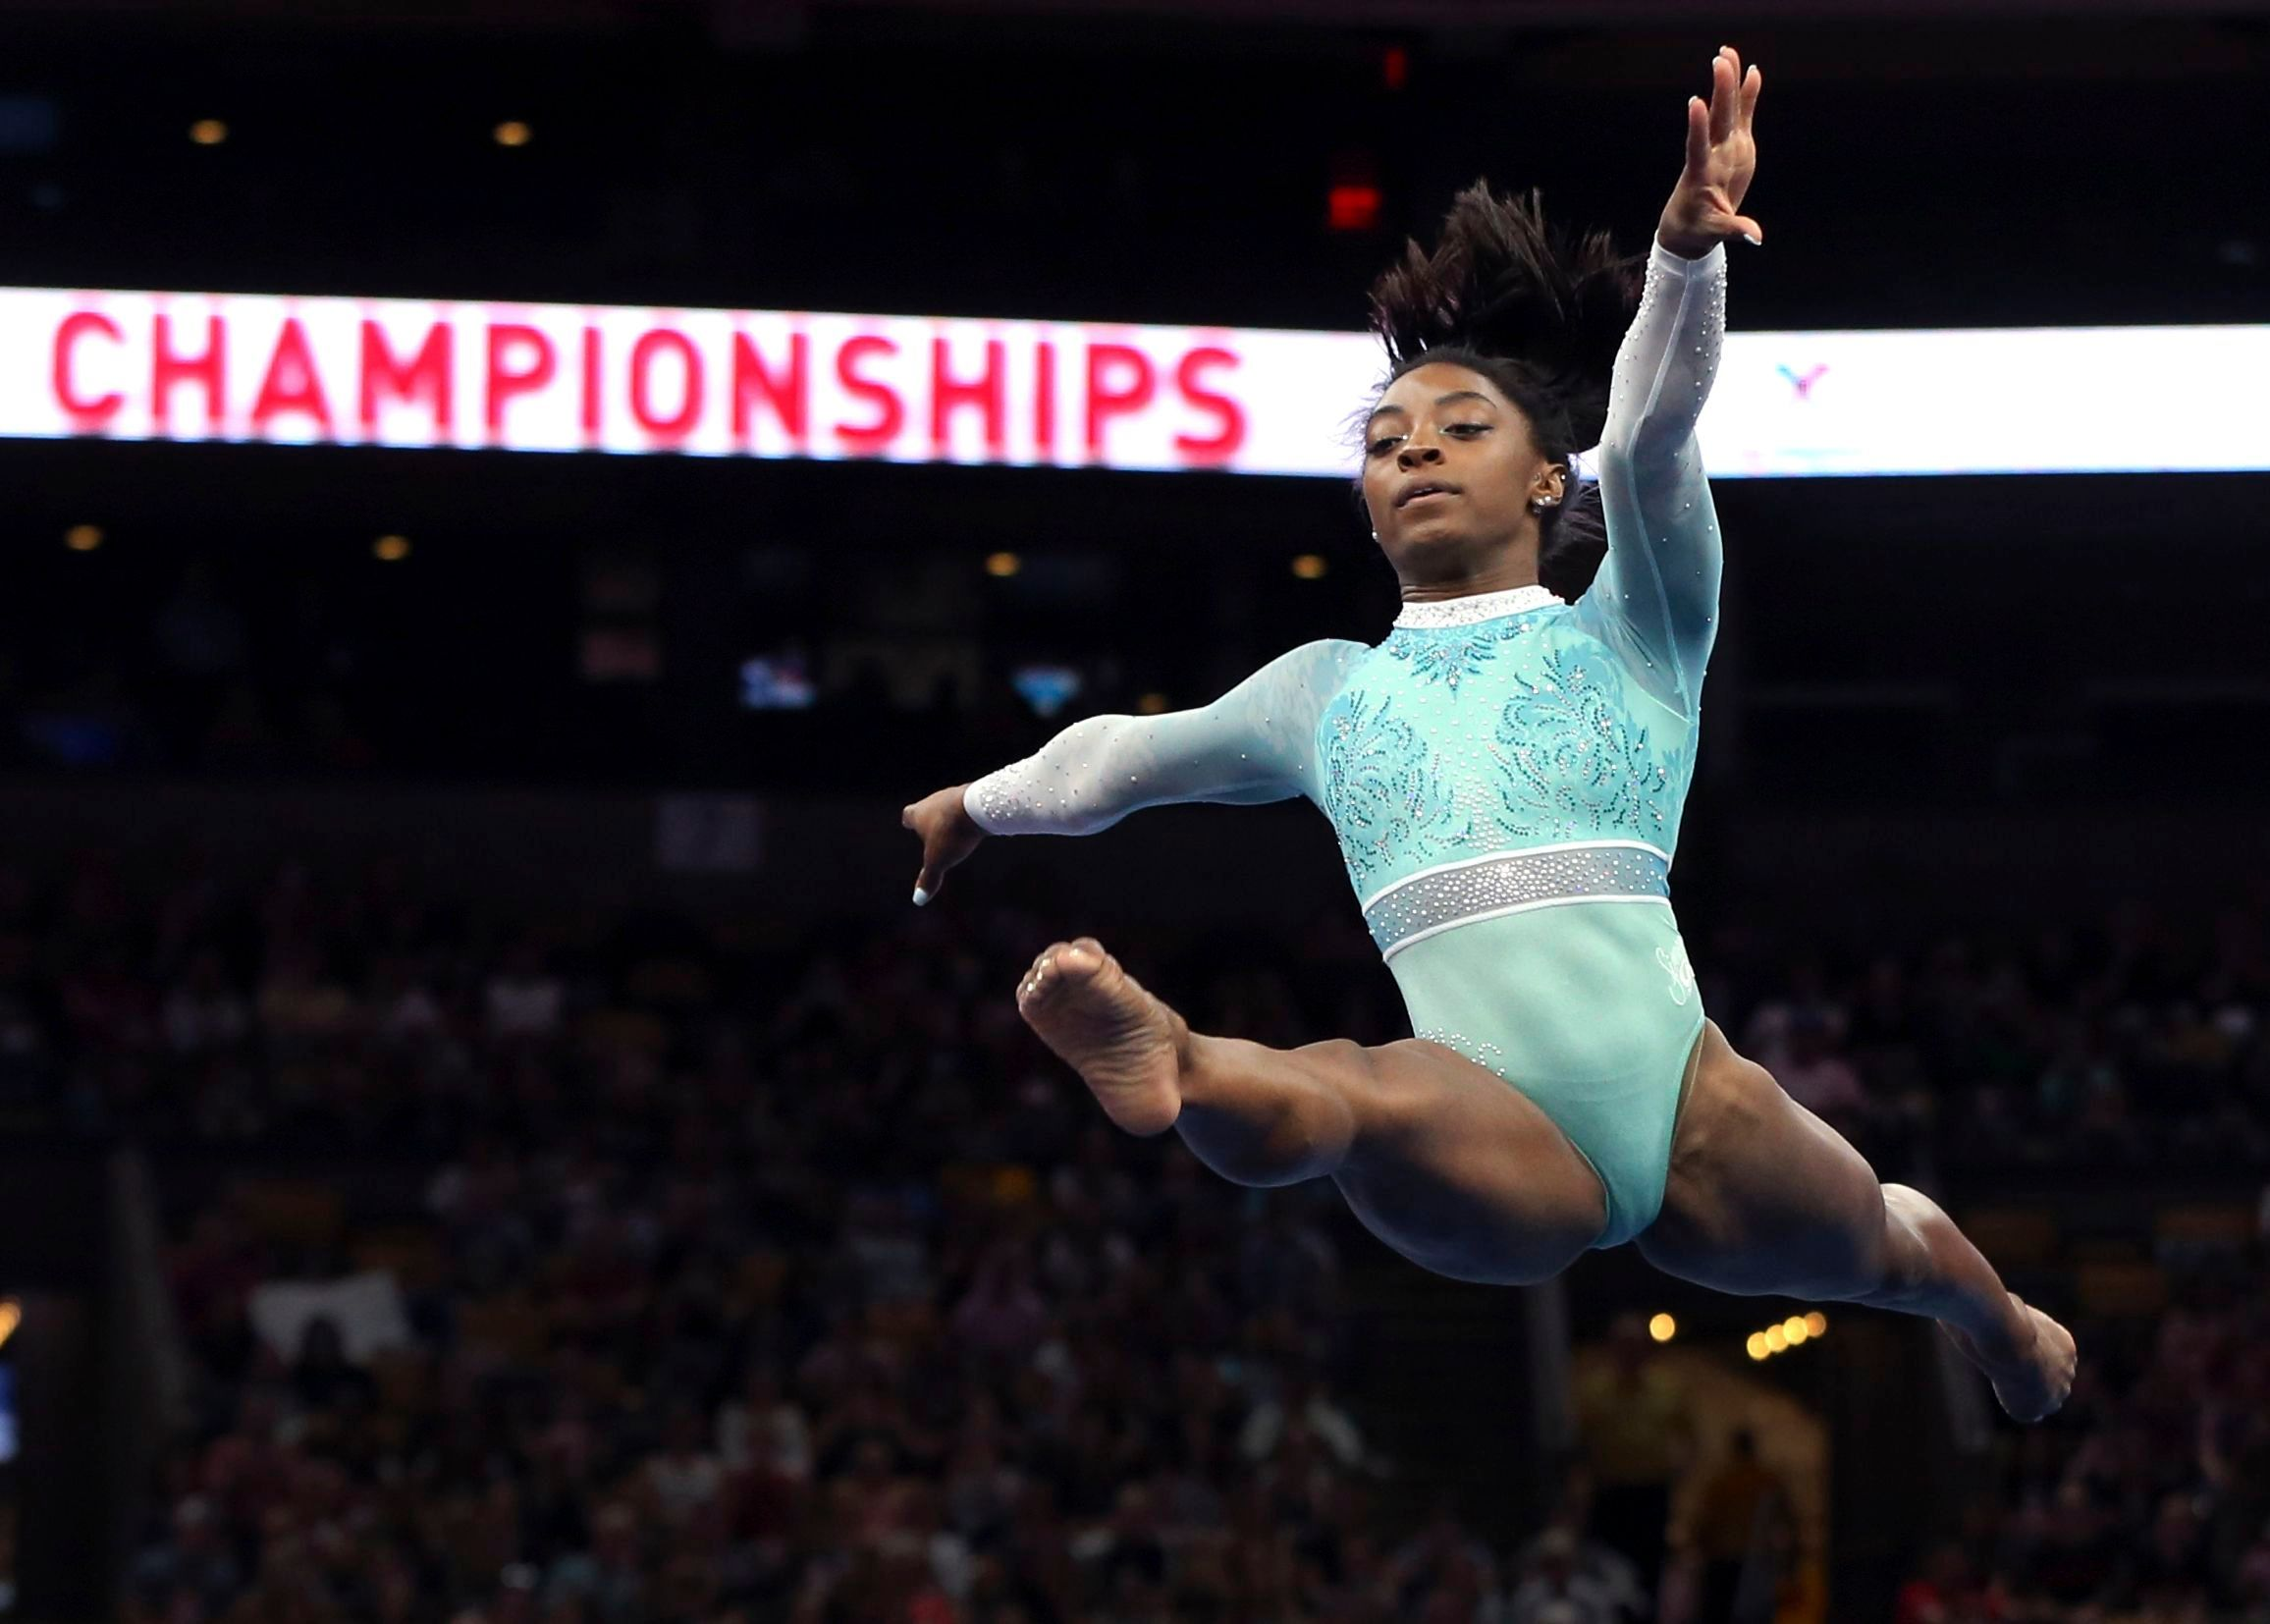 Mandatory Credit: Photo by Elise Amendola/AP/REX/Shutterstock (9794399g)                   Simone Biles competes on the floor exercise at the U.S. Gymnastics Championships, in Boston                   US Championships Gymnastics, Boston, USA - 19 Aug 2018